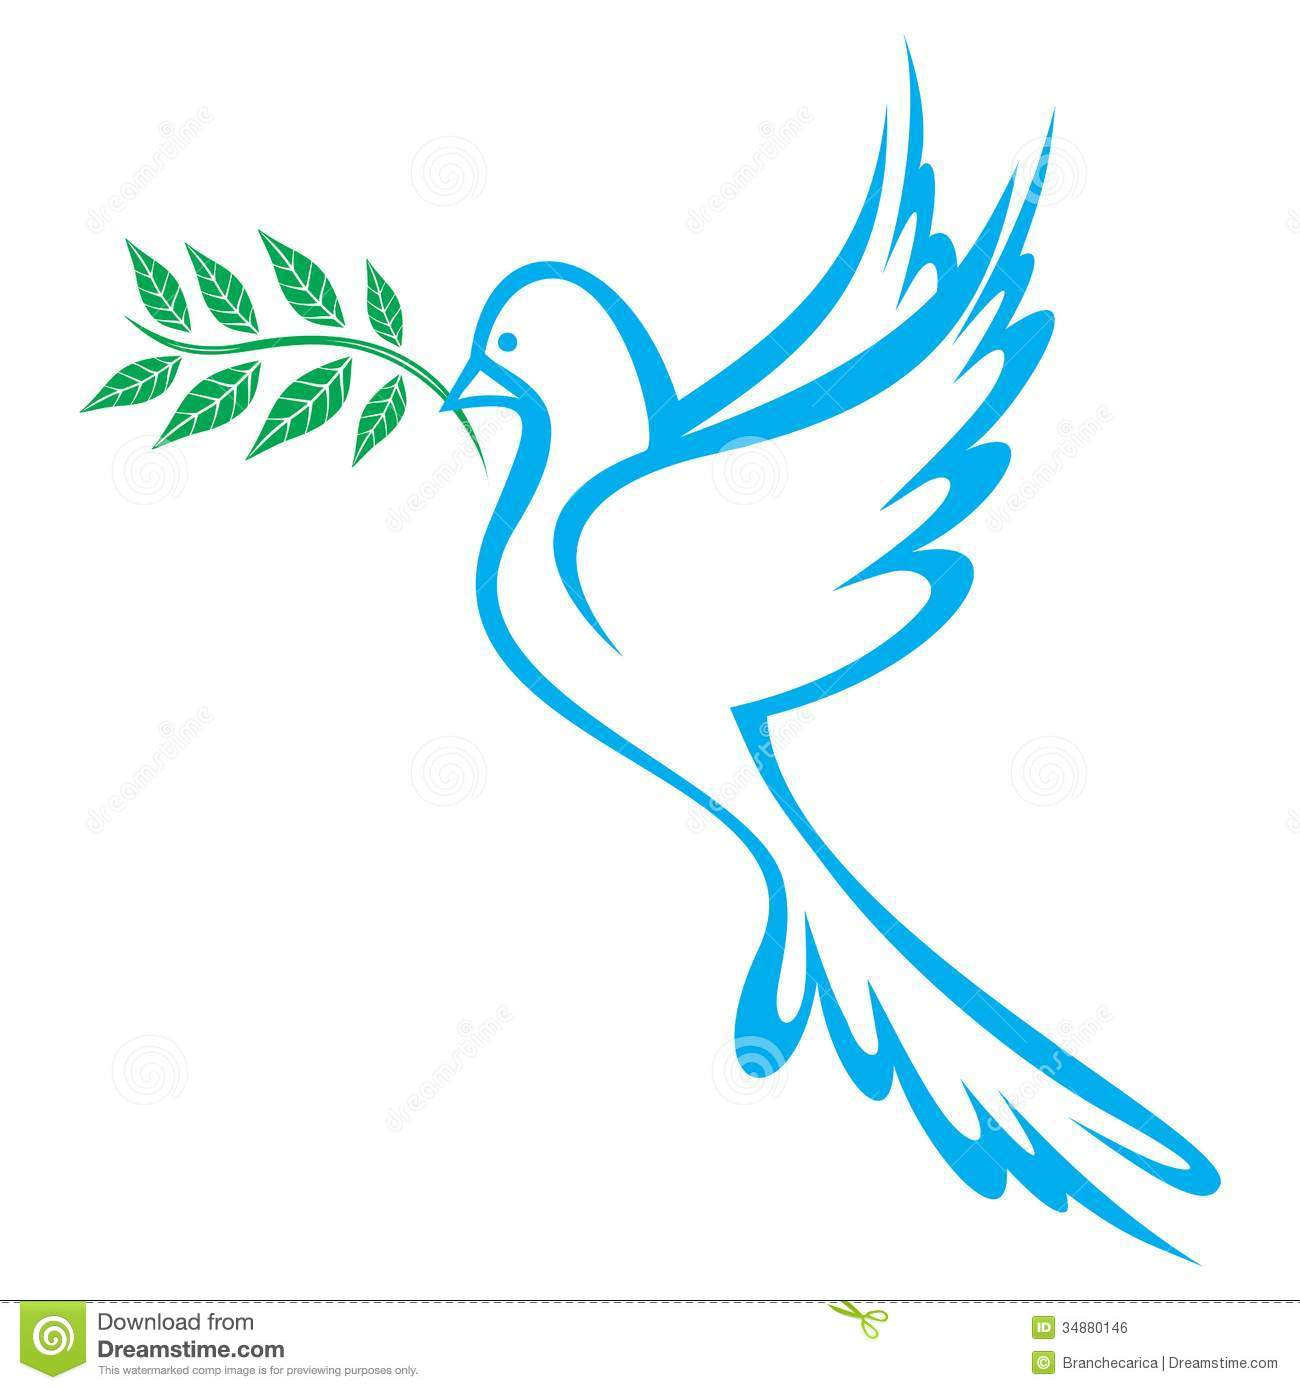 Dove Of Peace Royalty Free Stock Image - Image: 34880146